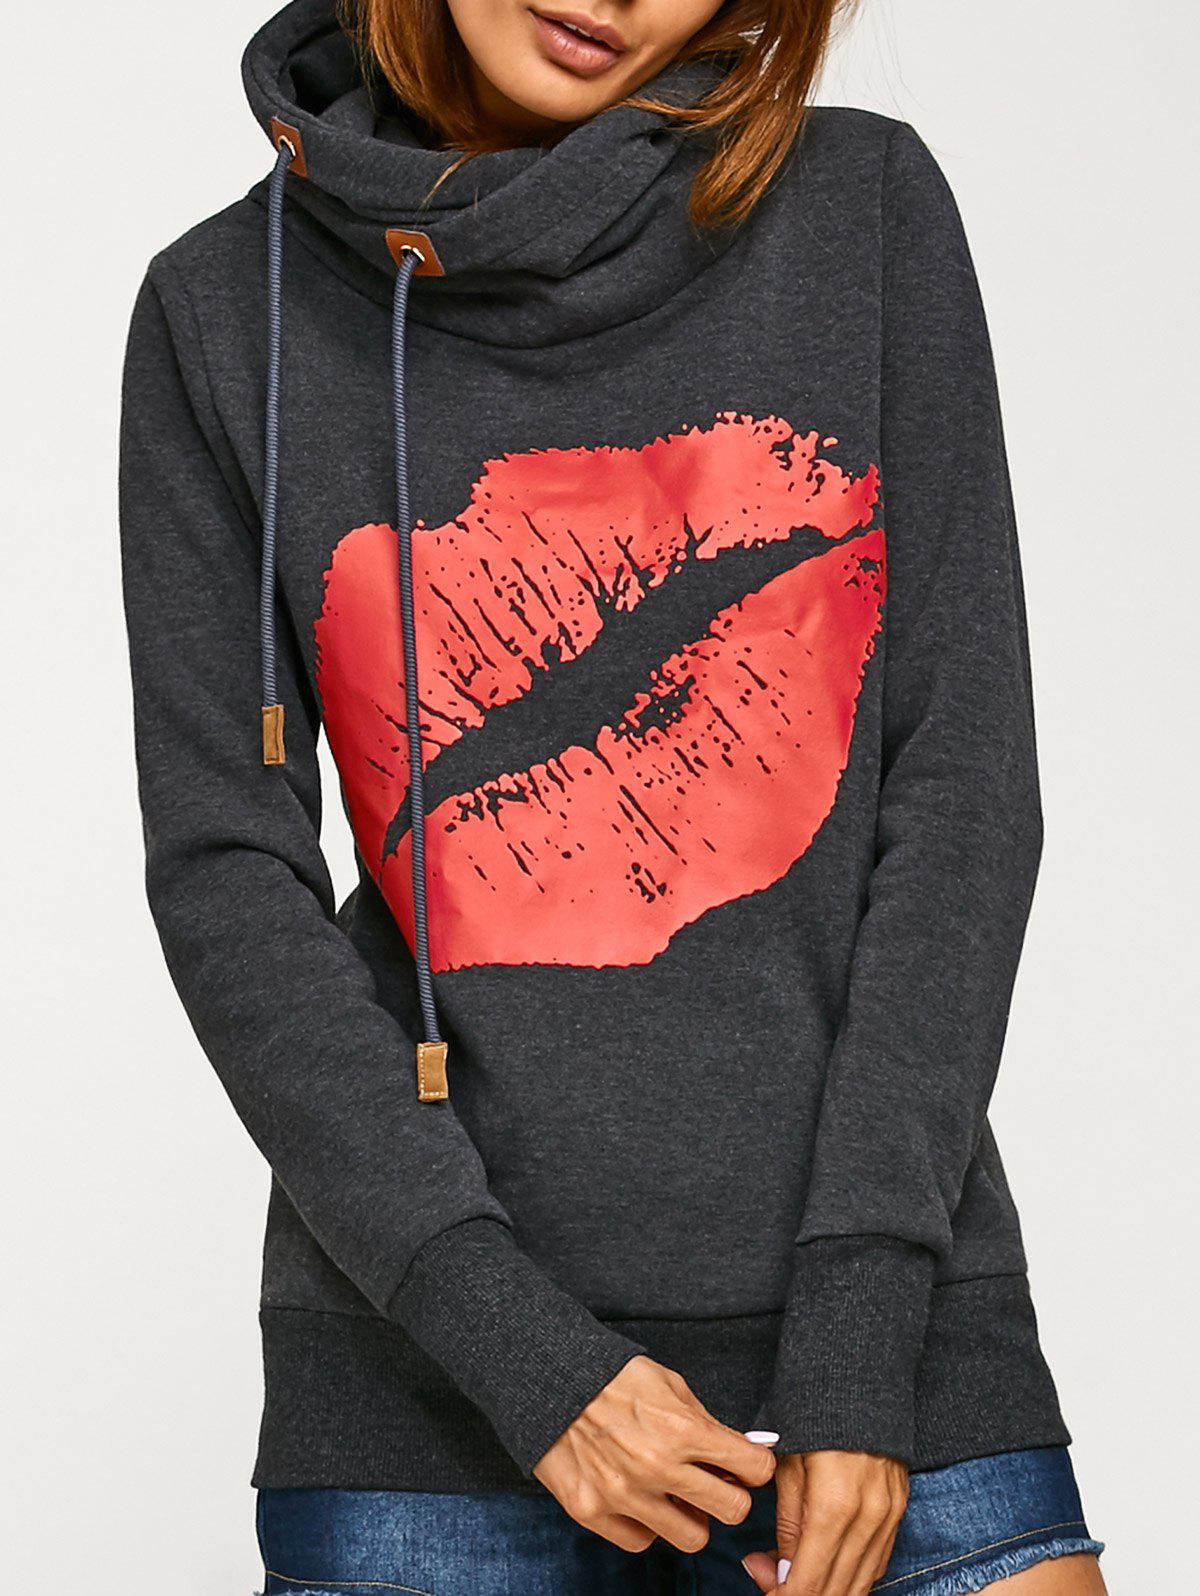 Sweatshirts & Hoodies Cheap For Women Fashion Online Sale ...